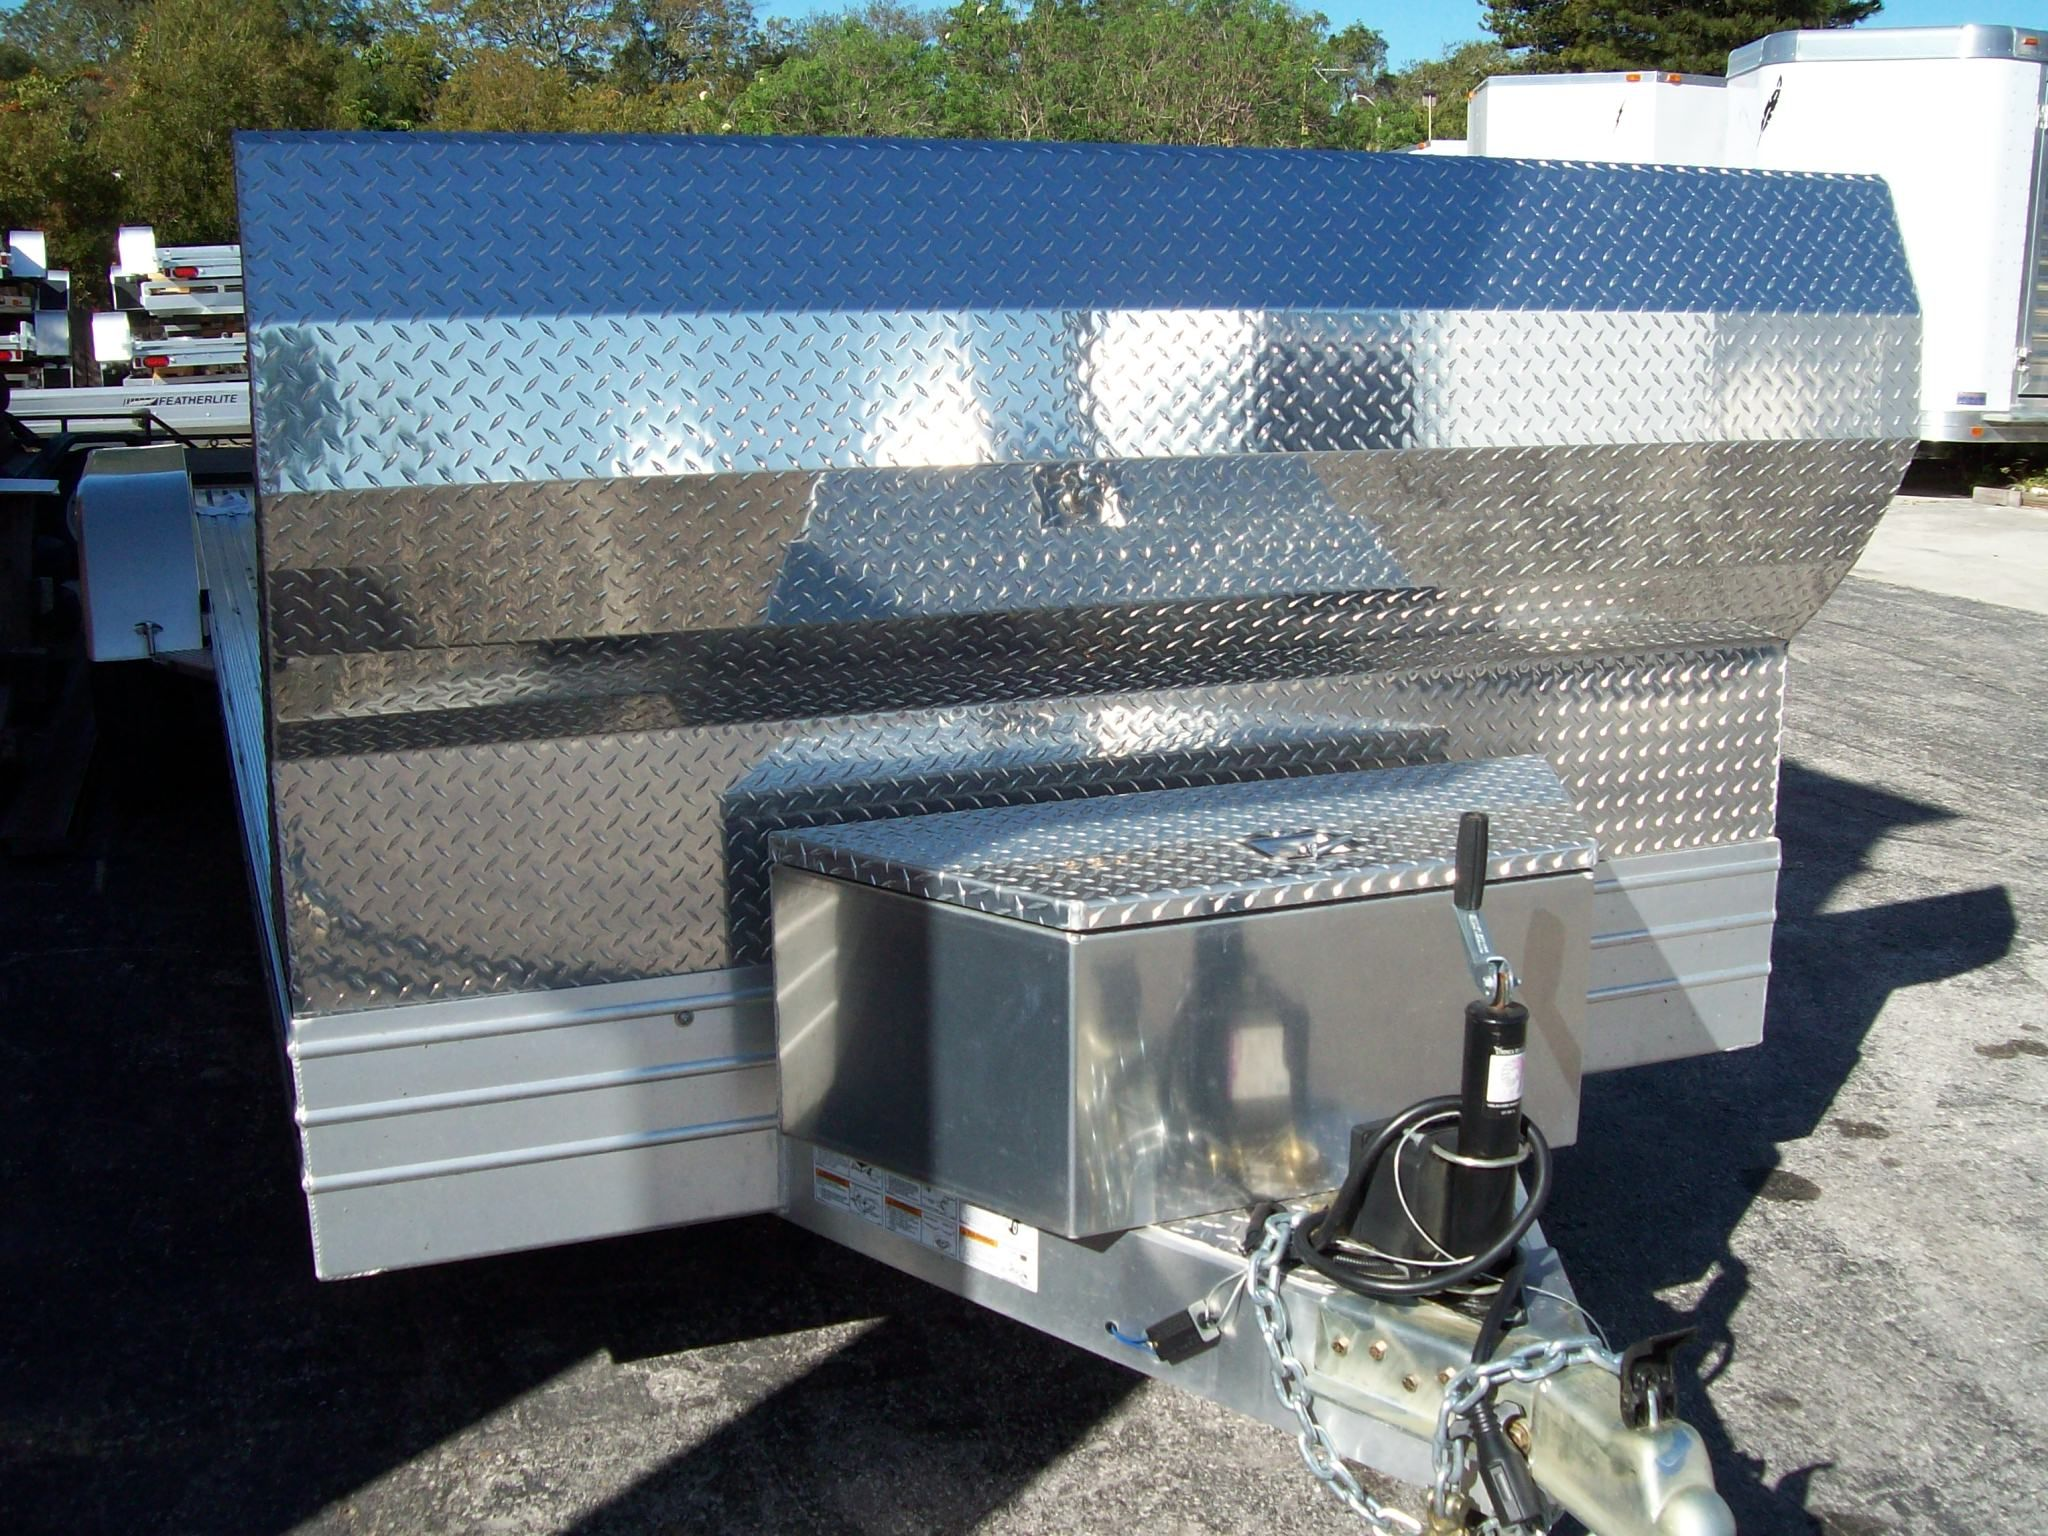 Featherlite 3110 Car Haulers, Options and accessories - Auto Carrier ...